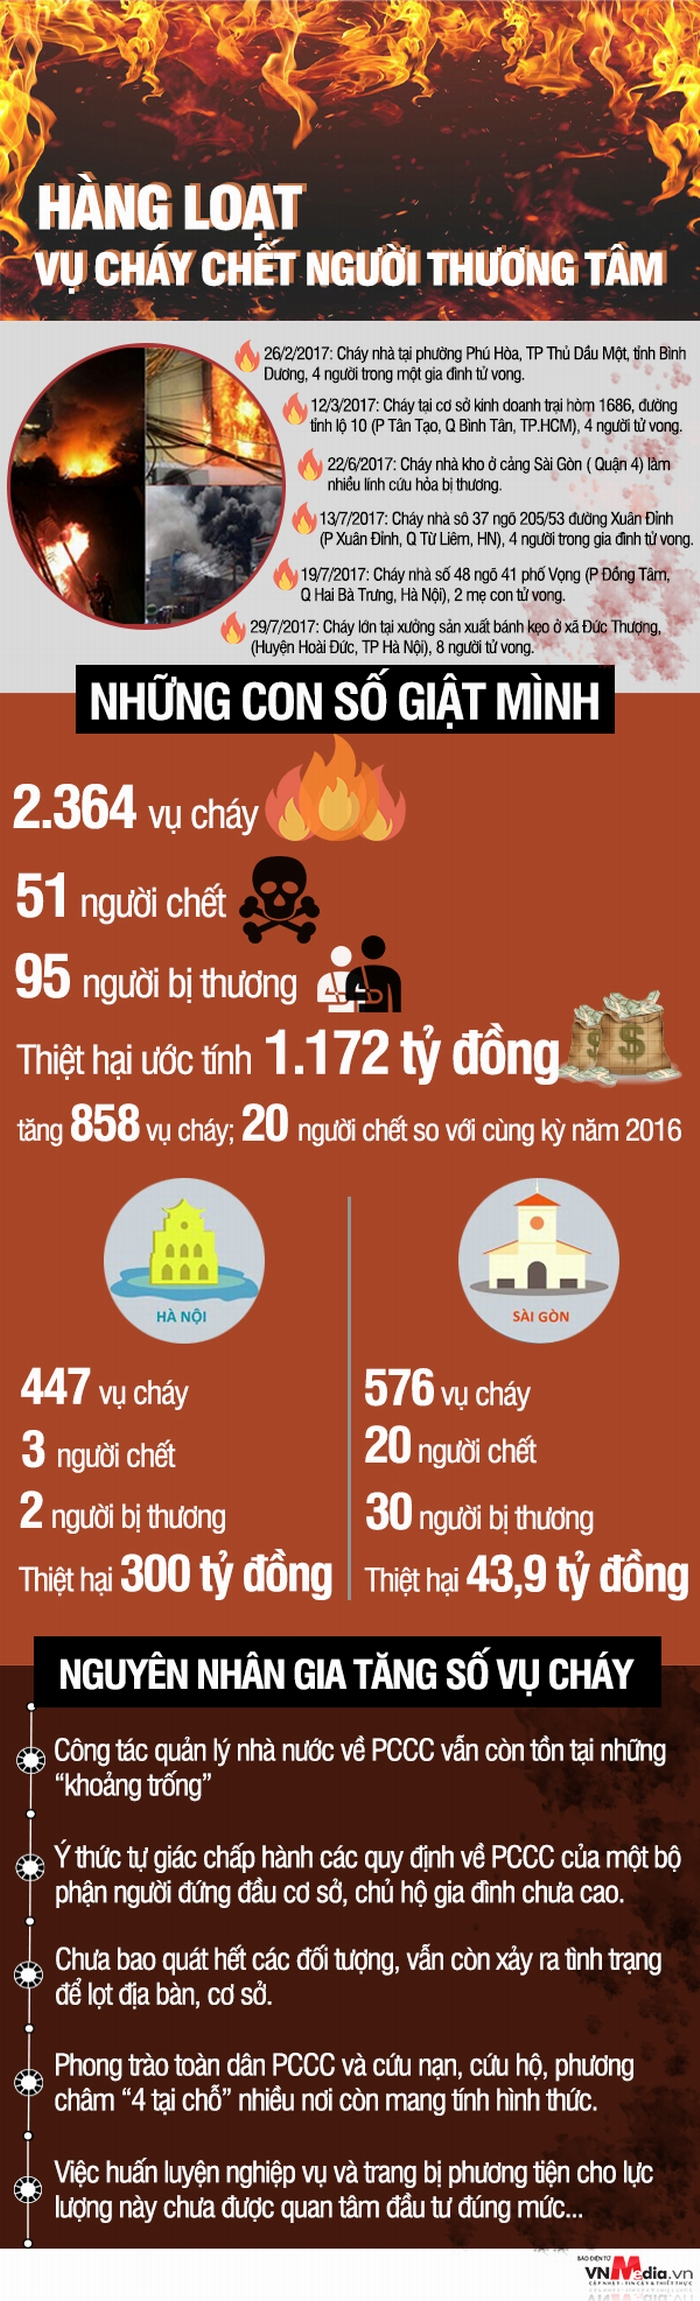 infographic giat minh ve con so chay no gay chet nguoi tren ca nuoc